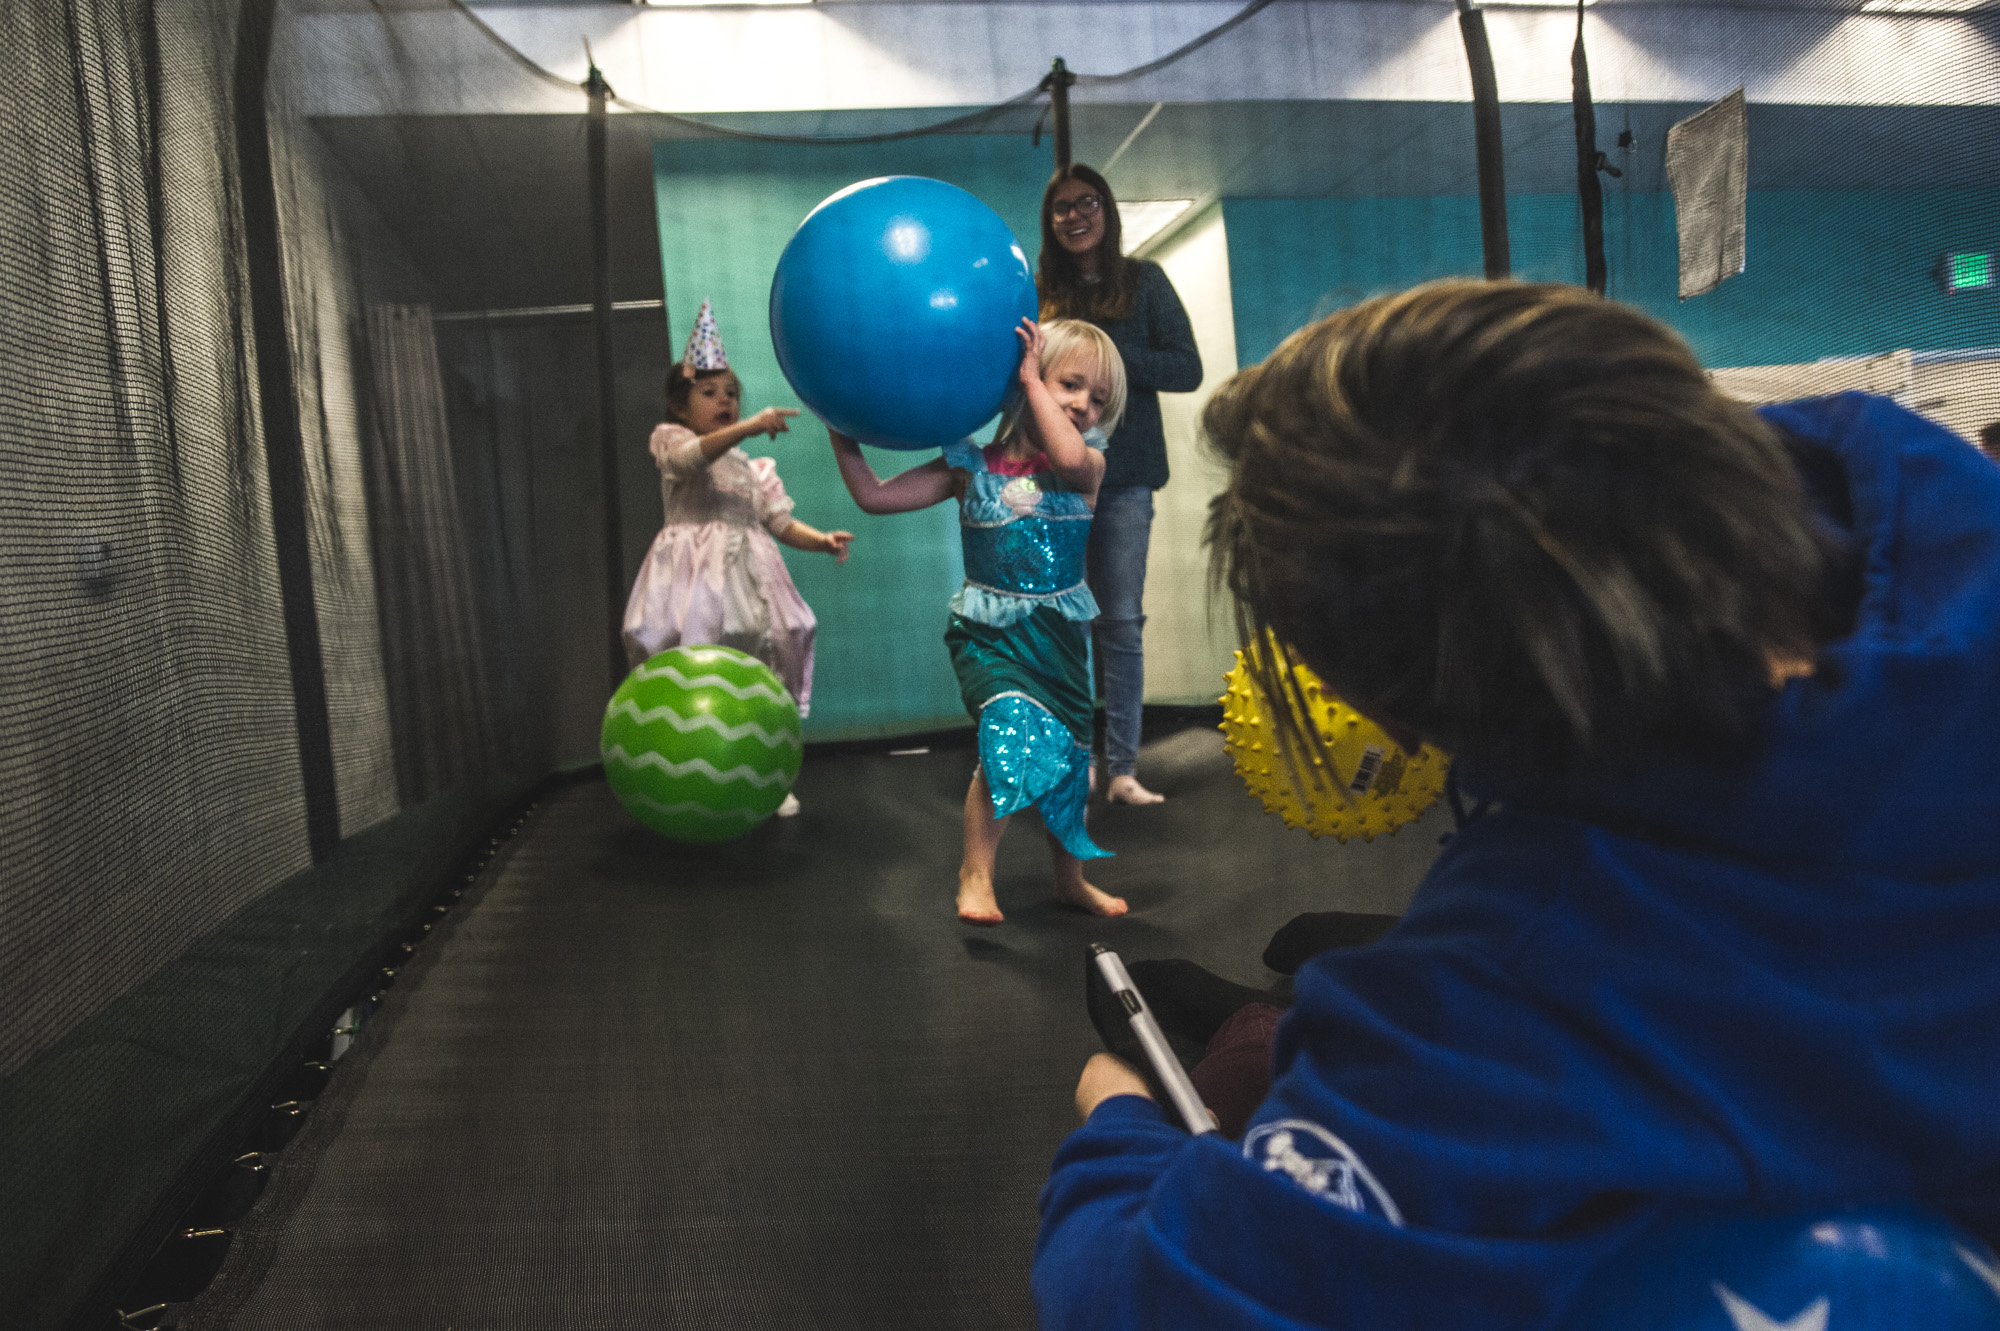 Four people are on a trampoline, 2 younger kids and 2 bigger kids, and one of the smaller children takes aim at one of the bigger kids with a large blue ball at a kids' gym in Littleton, Colorado.